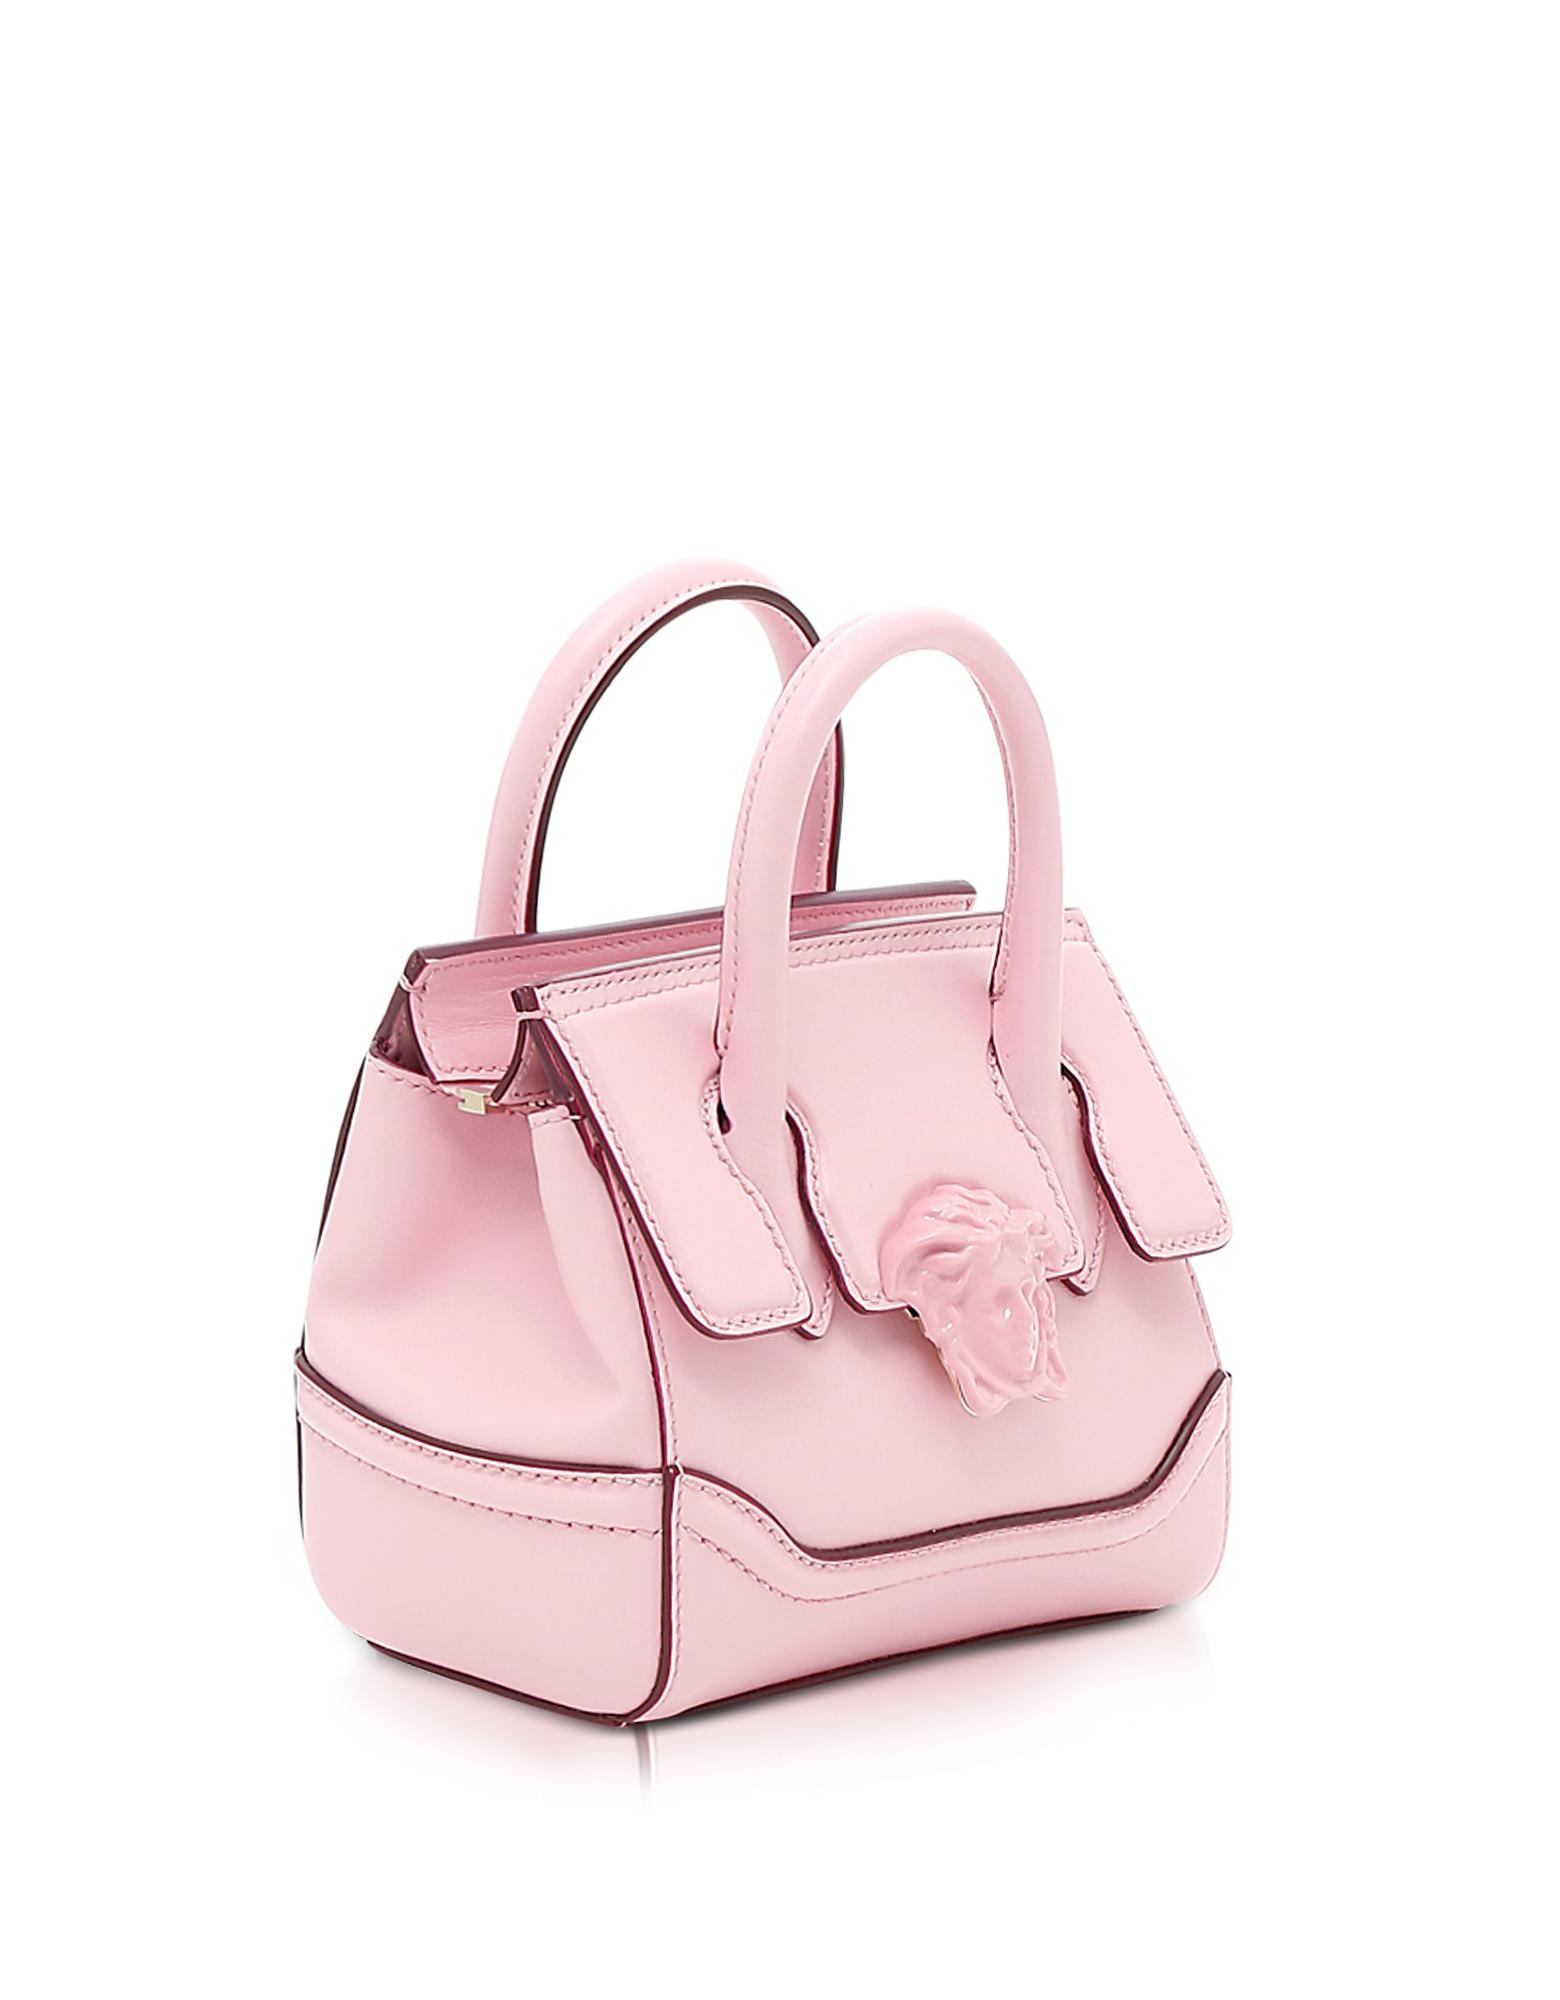 92f11ad44b Lyst - Versace Palazzo Empire Pink Leather Mini Handbag in Pink